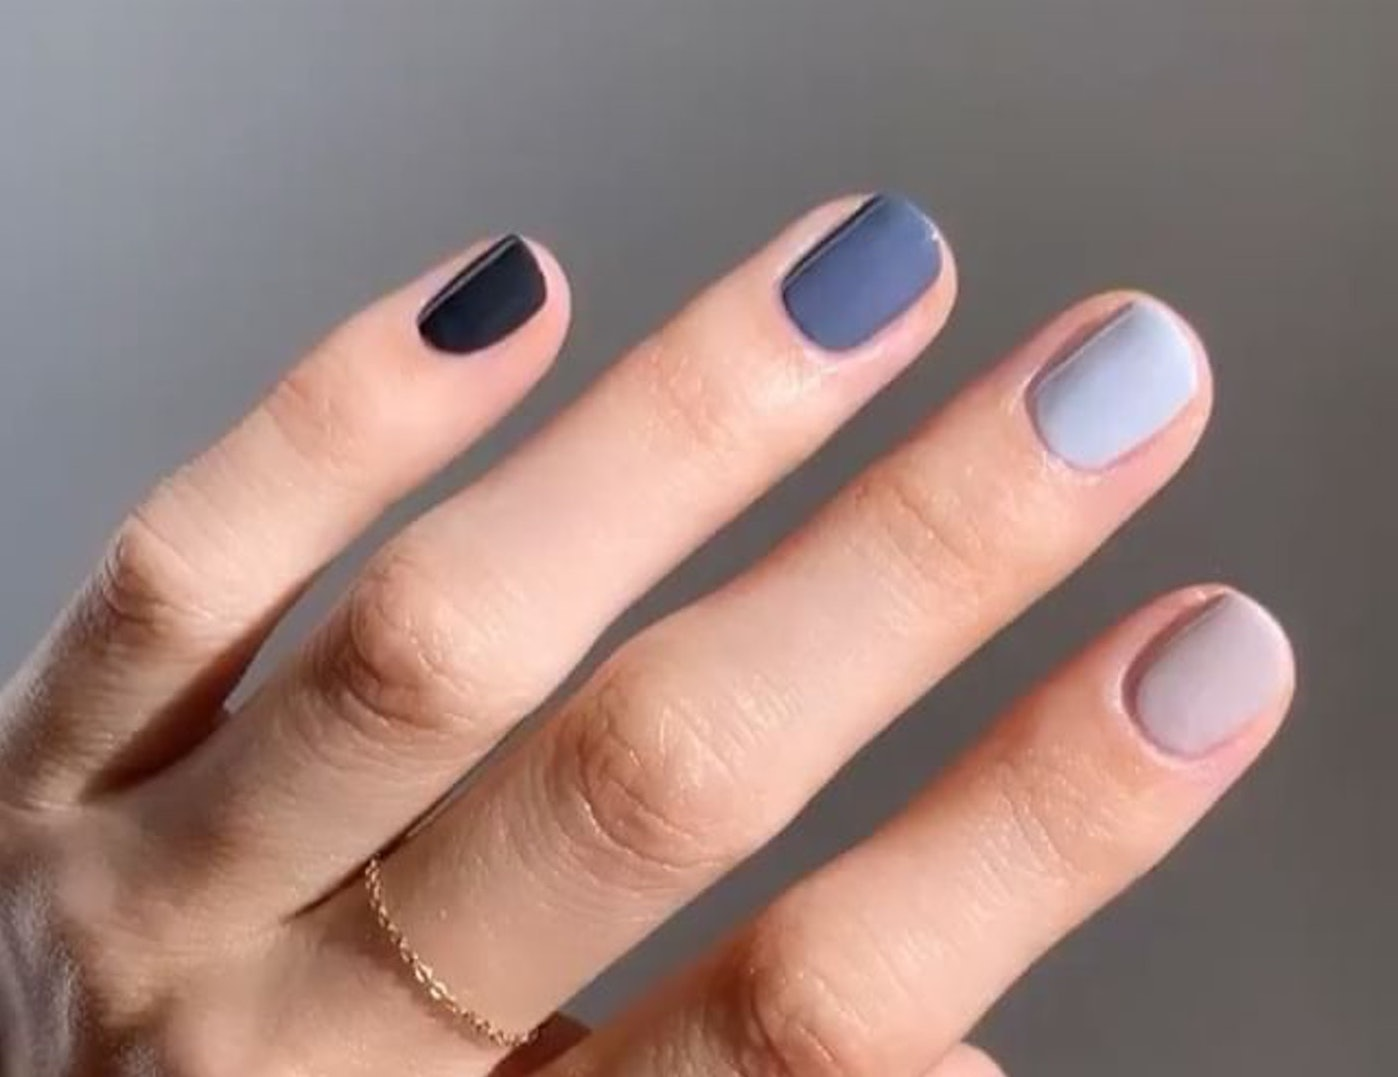 9 April 2019 Nail Colors And Trends To Try For The Month Ahead